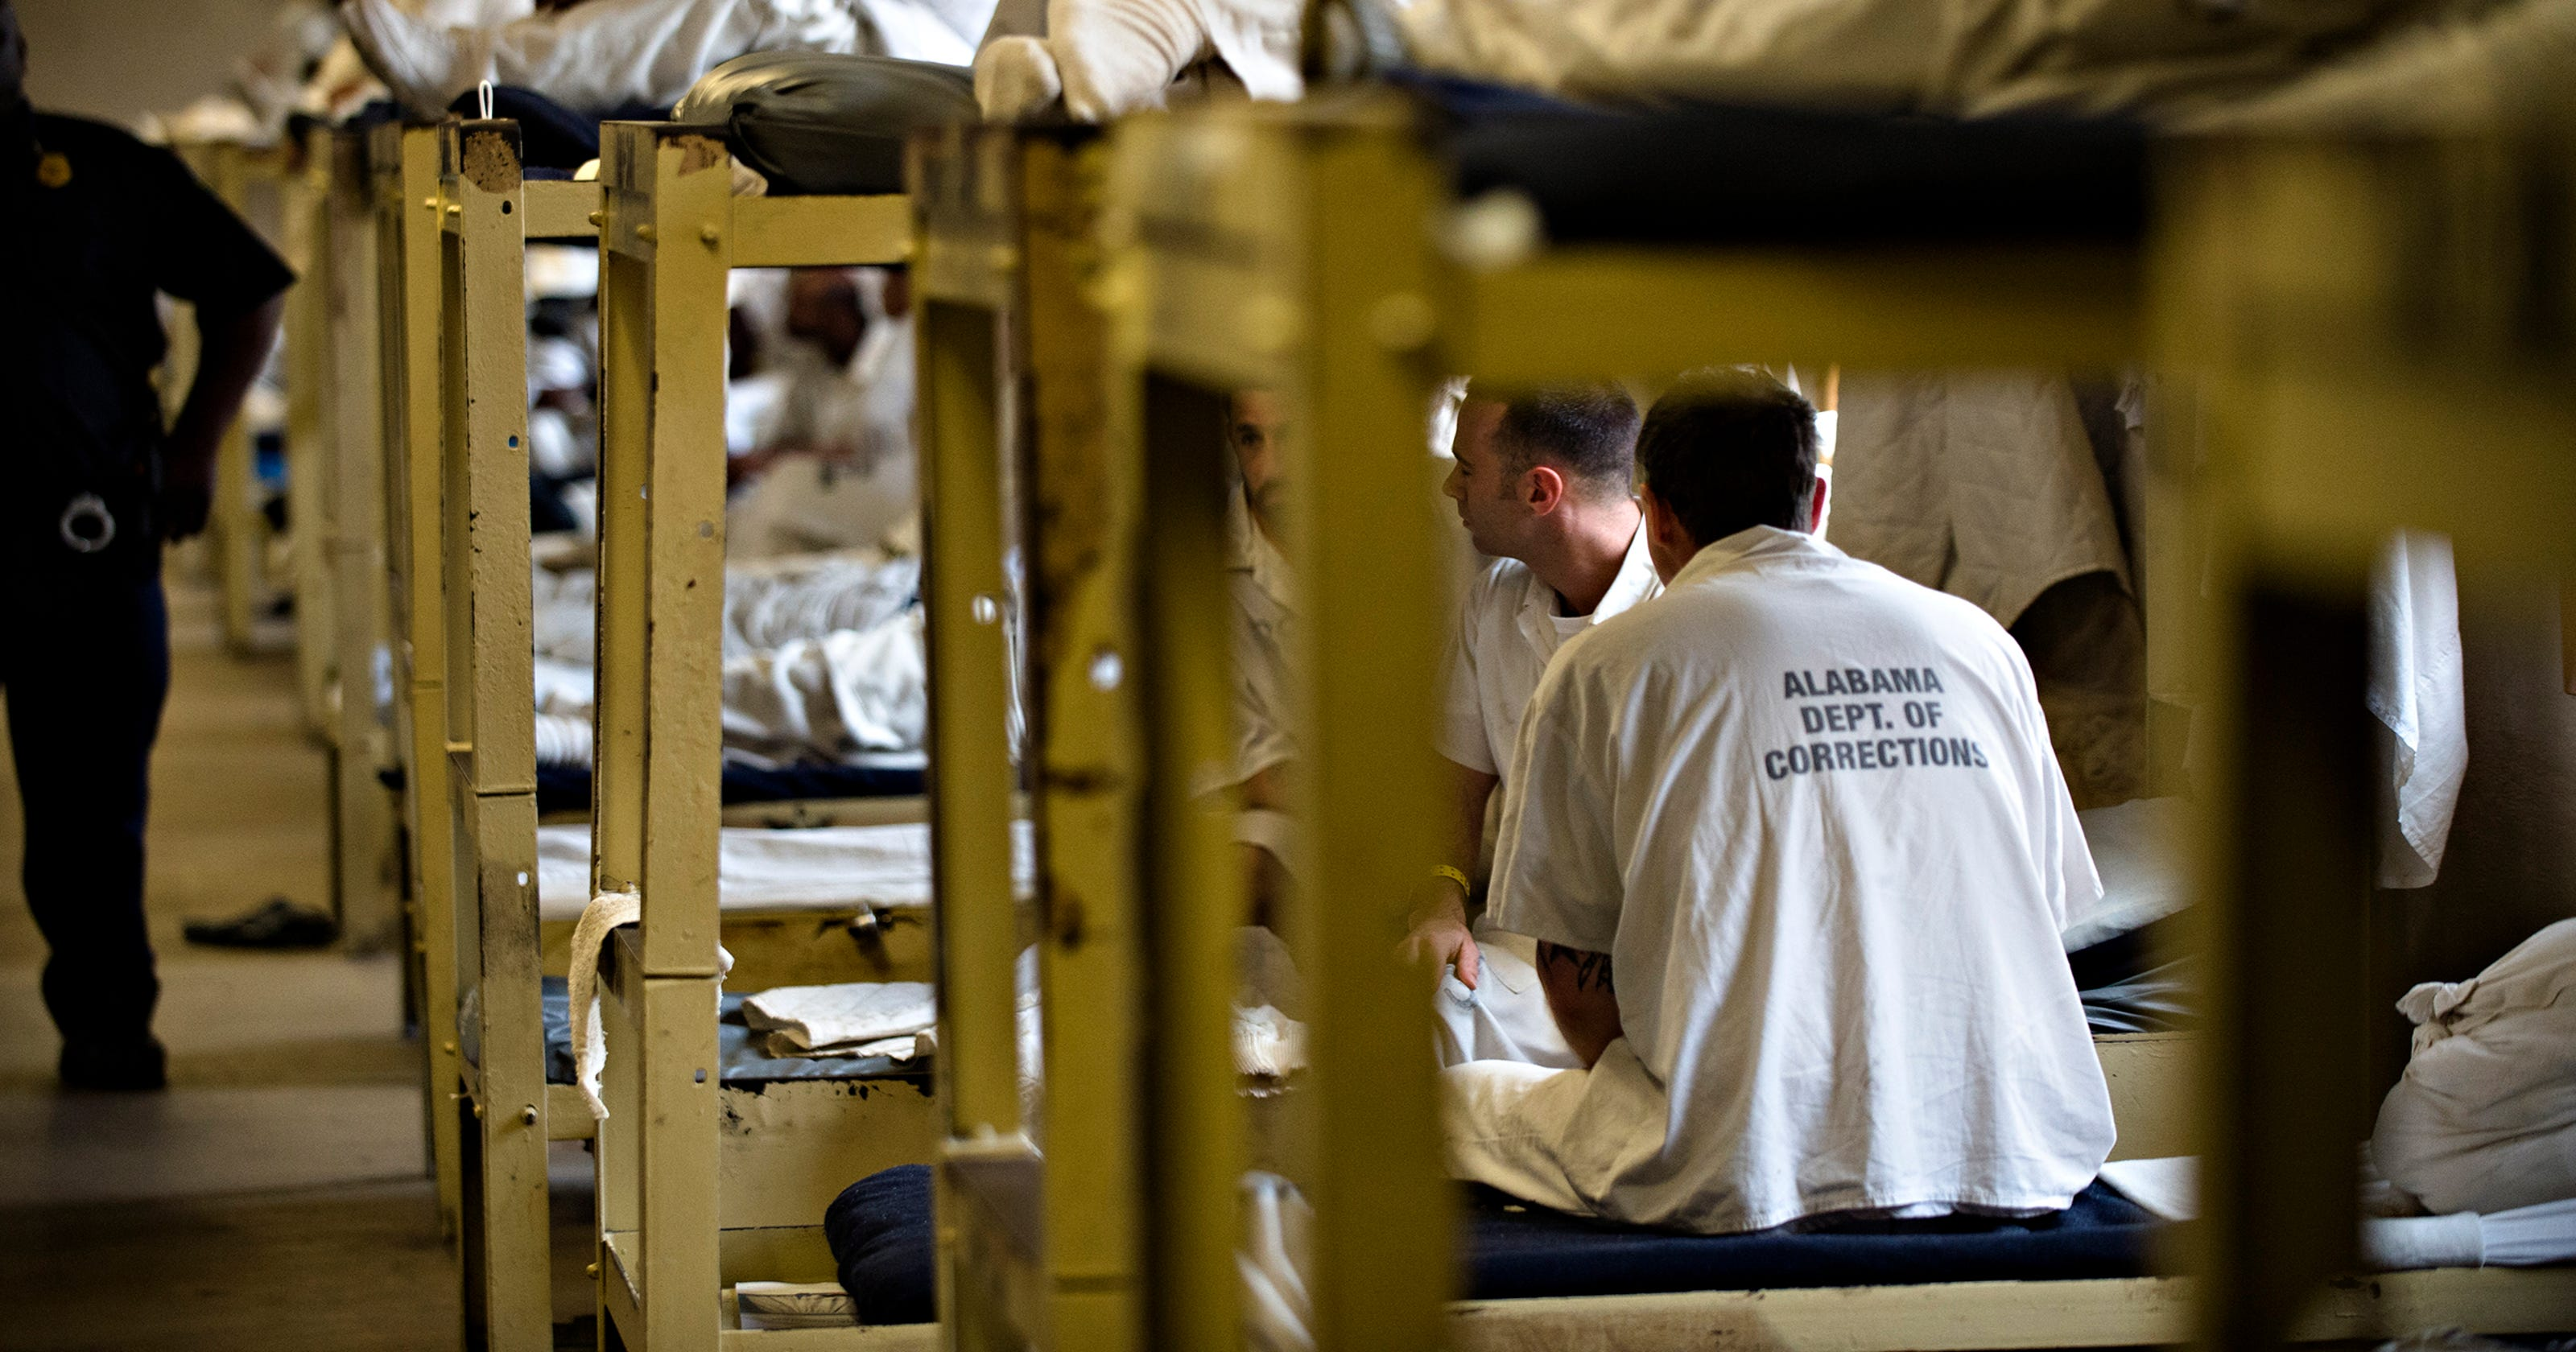 Bid process for prison health care contract brings criticisms